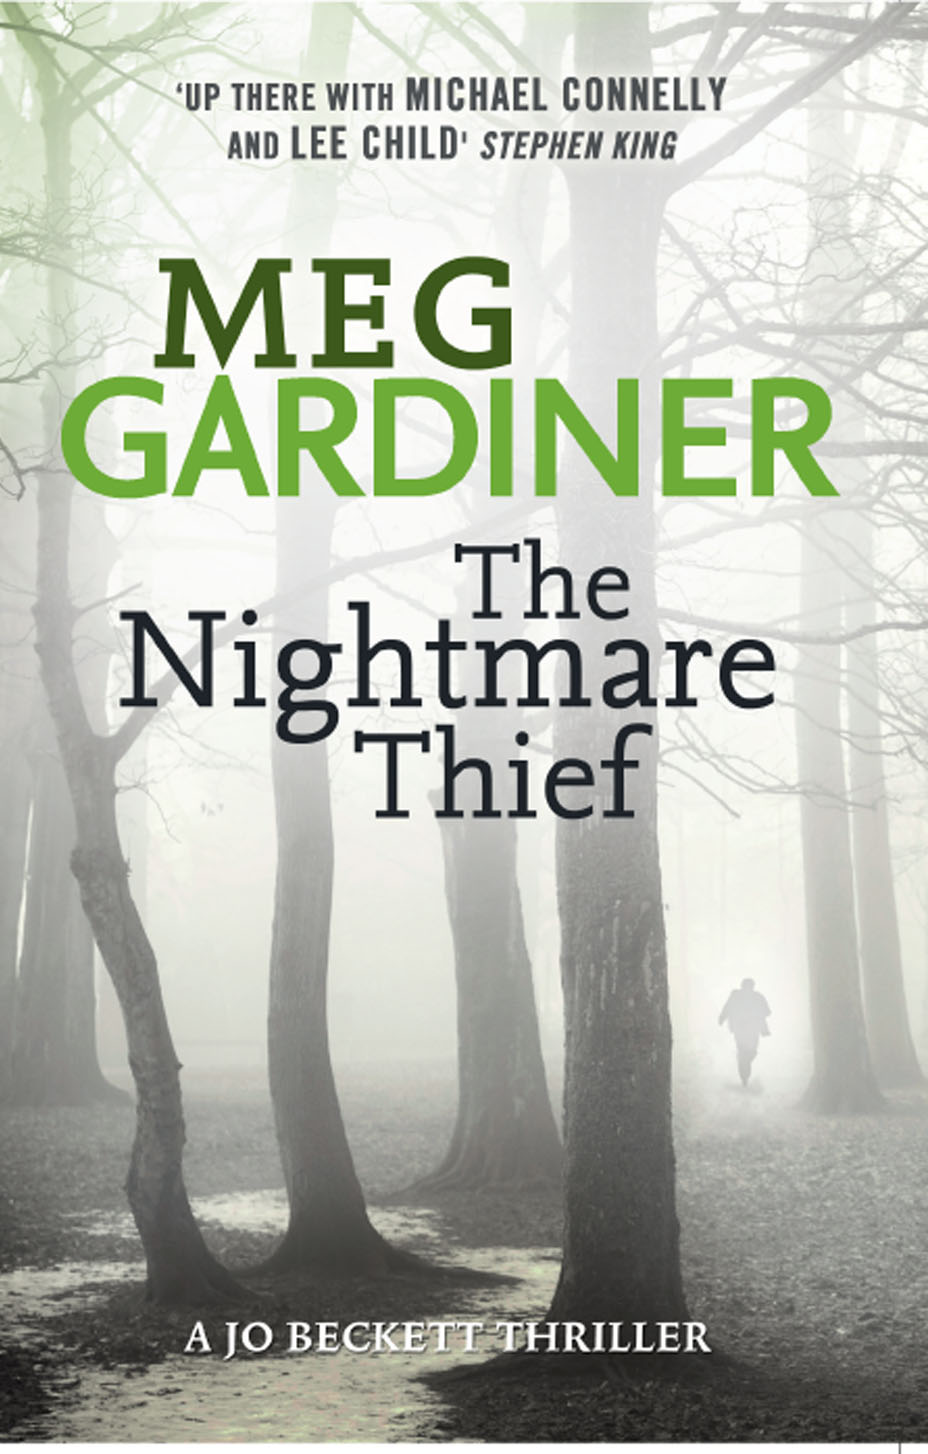 цены Meg Gardiner The Nightmare Thief